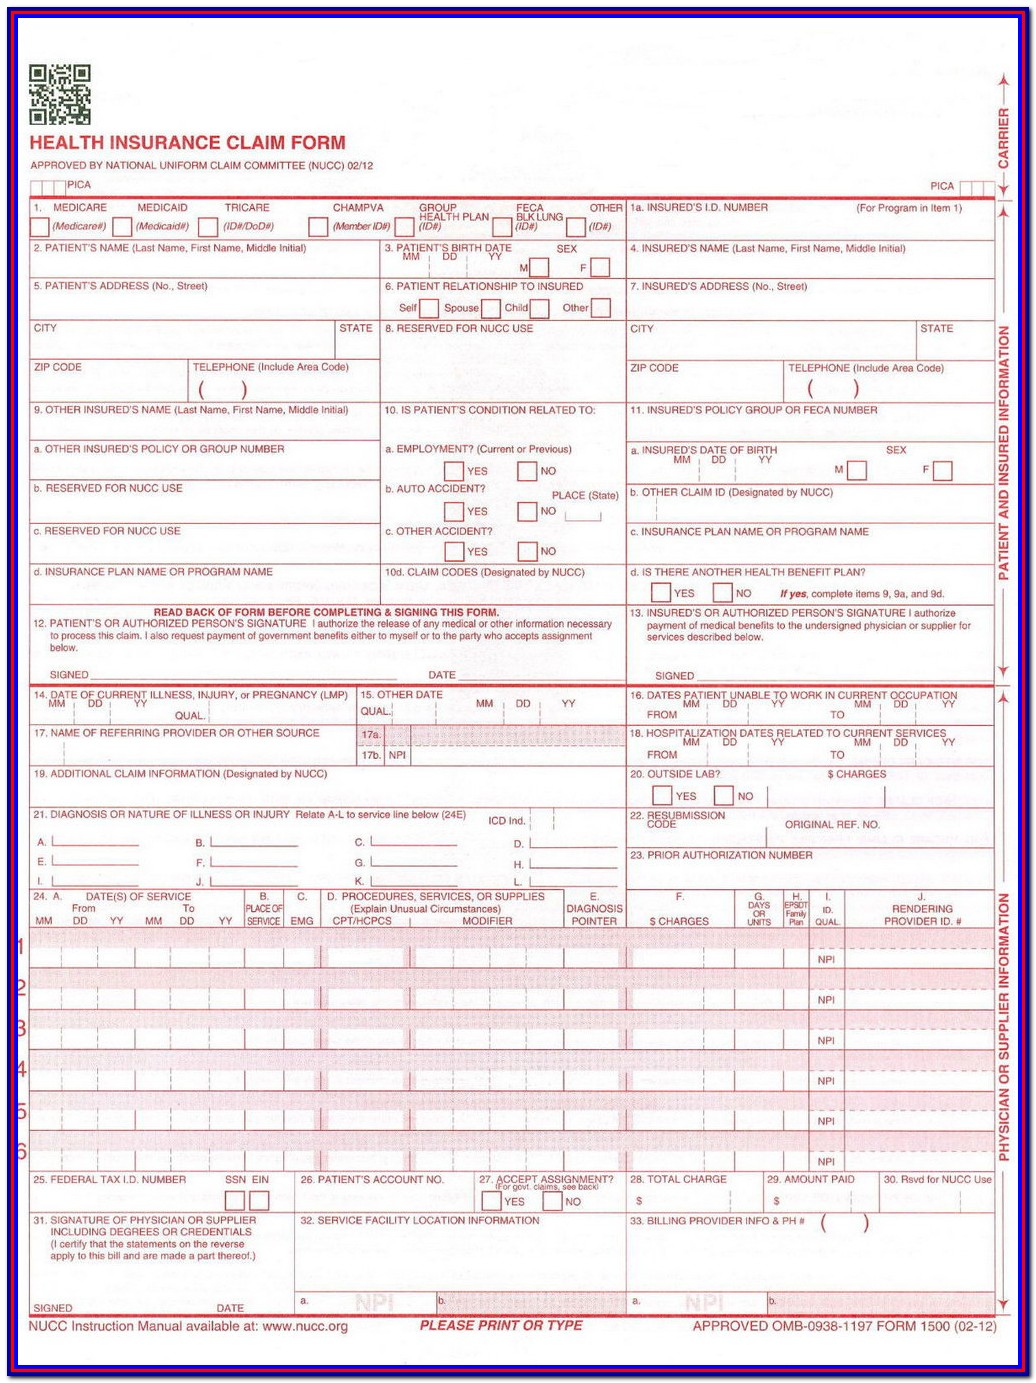 Cms 1500 Claim Form Instructions Pdf